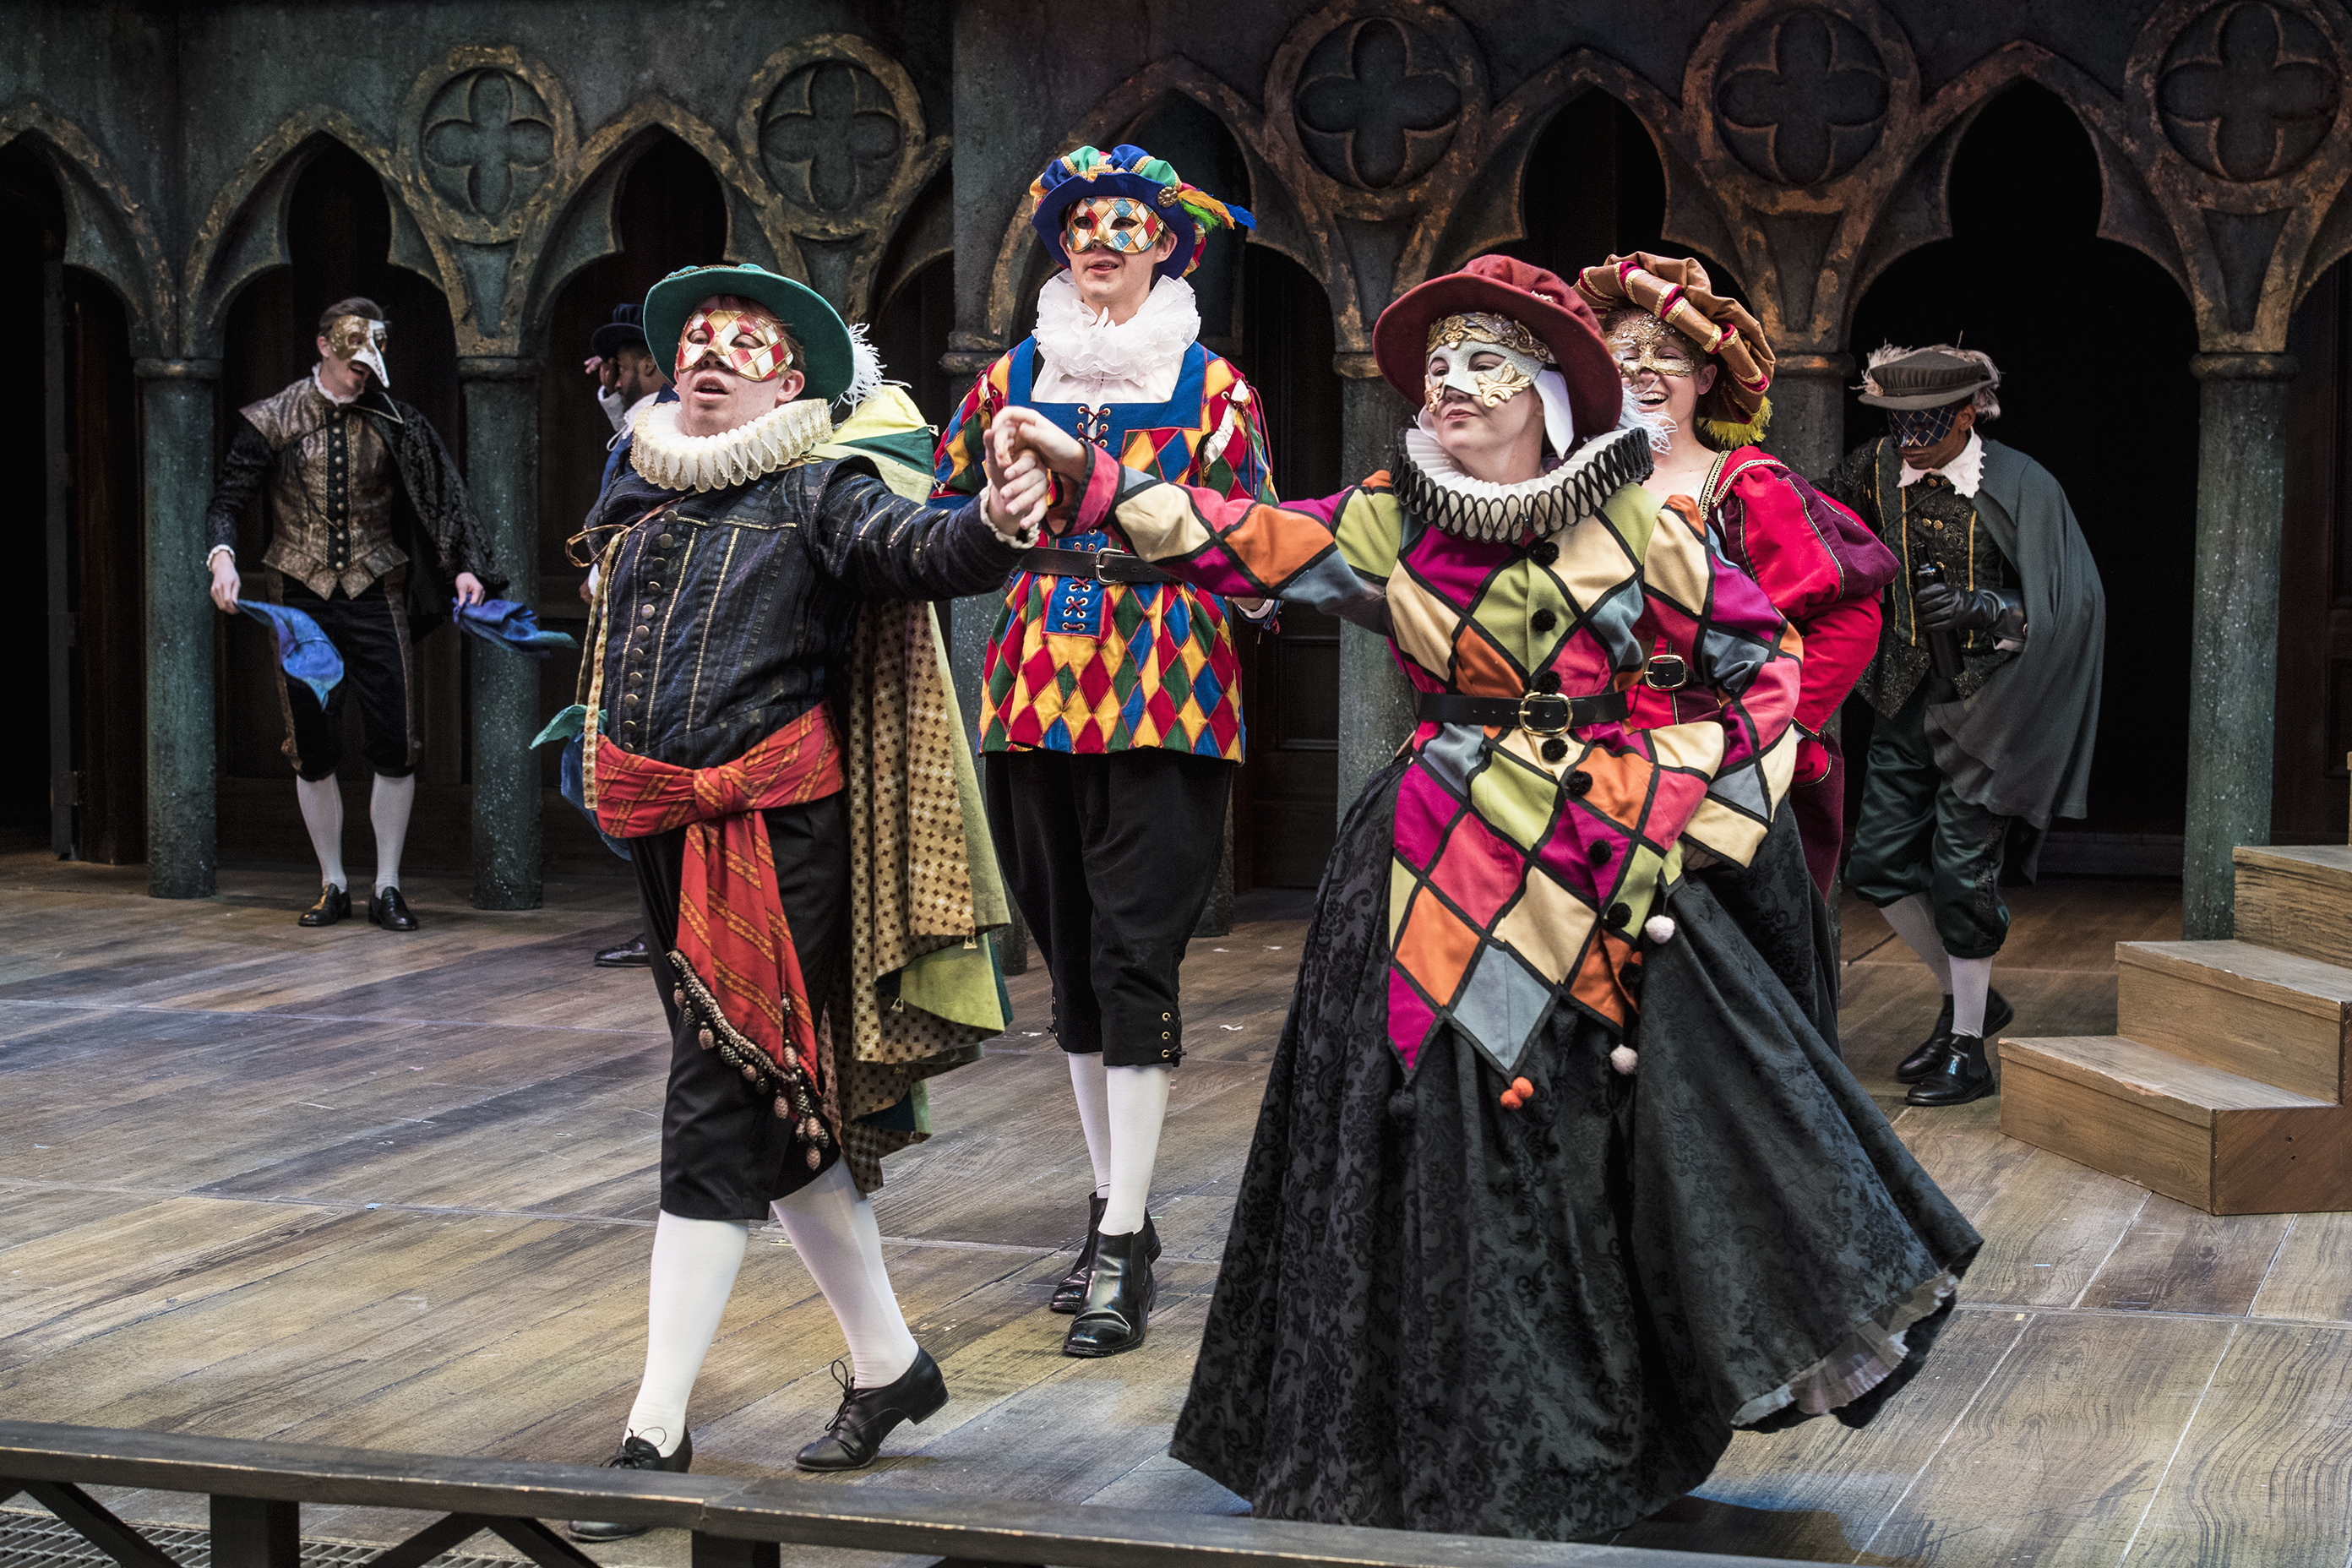 A scene from The Merchant of Venice